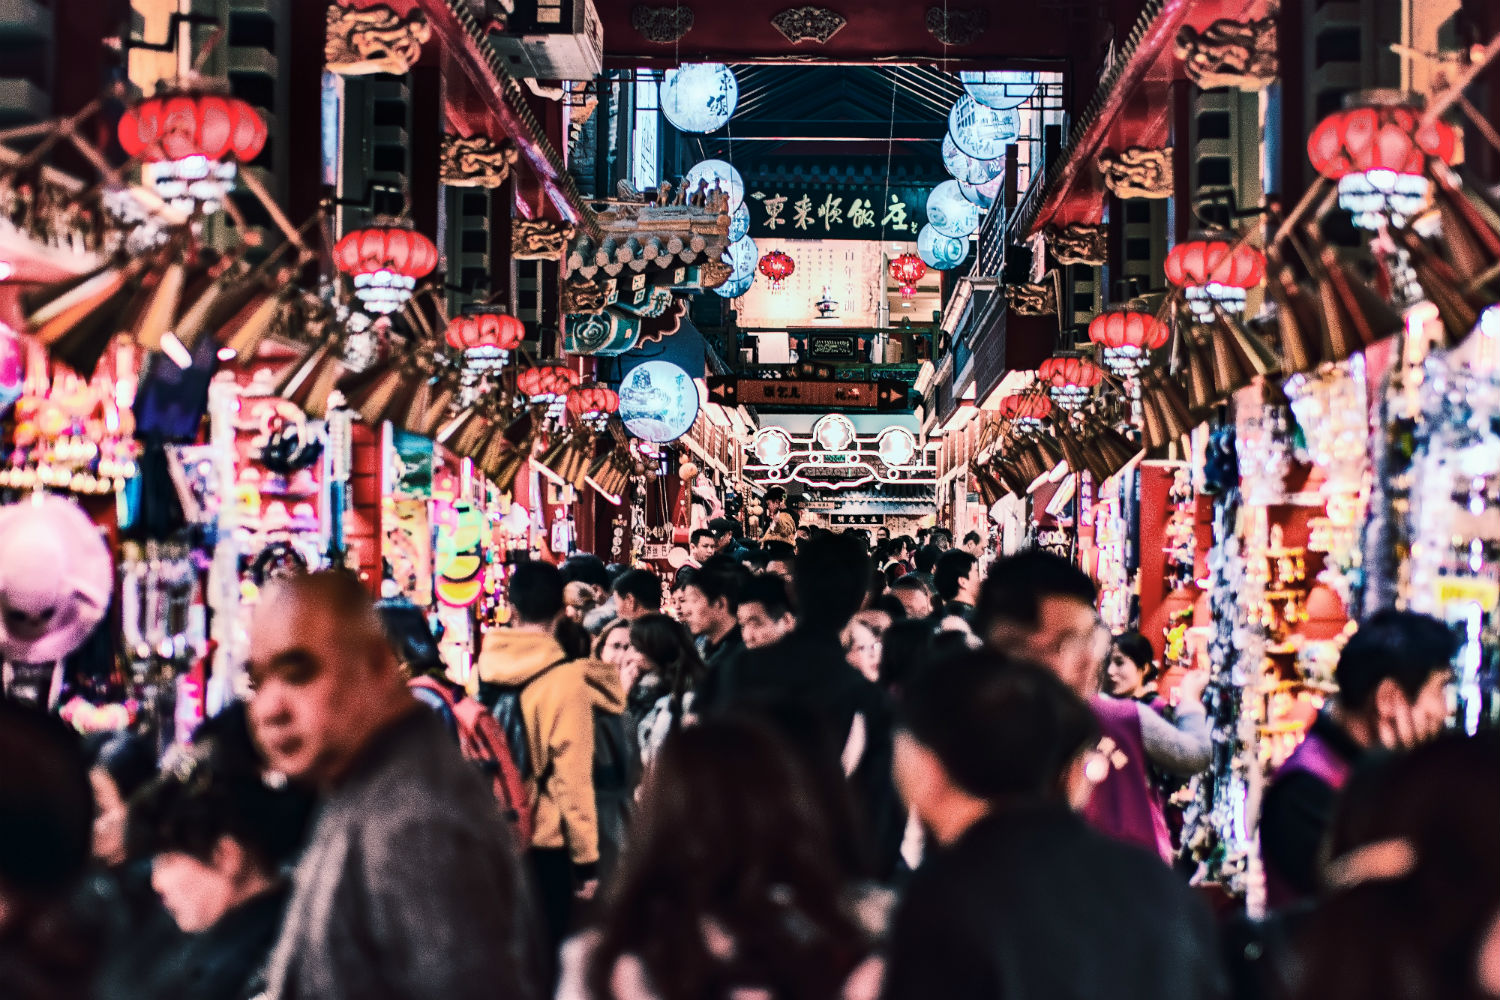 Impact of COVID-19 on FMCG during Chinese New Year